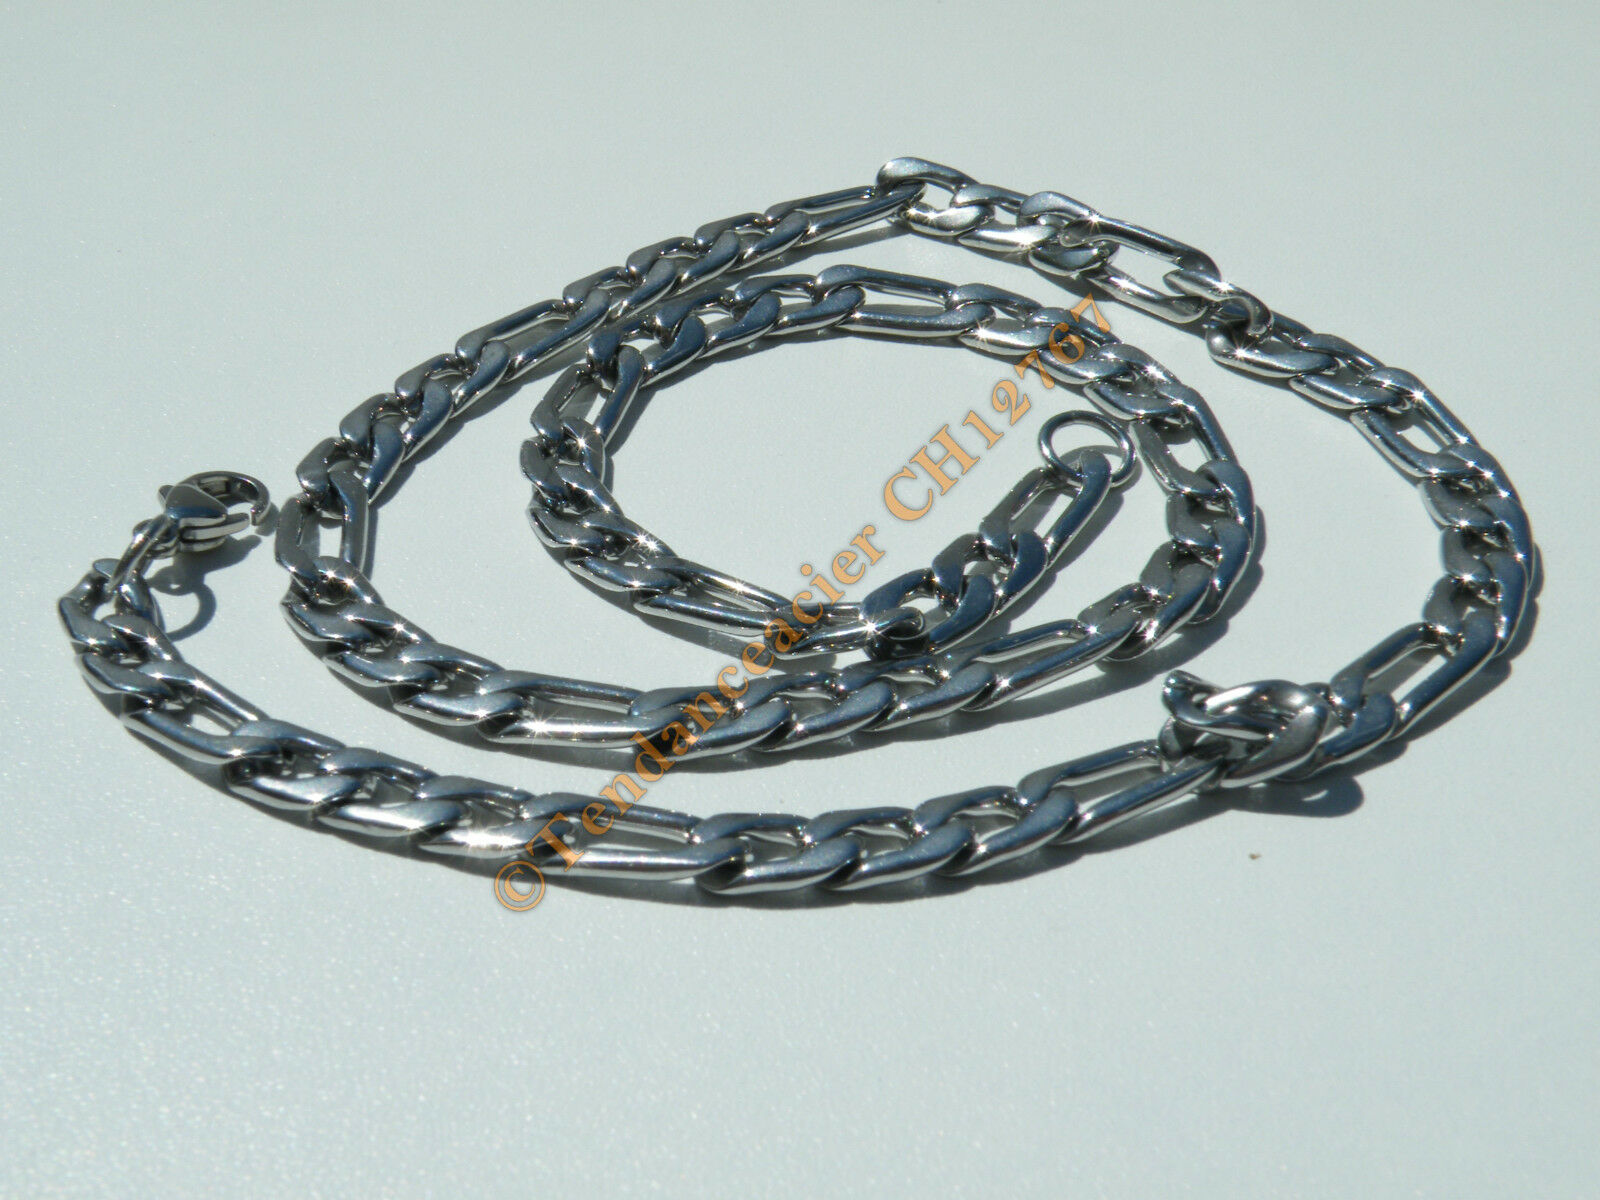 Chaine Collier 56 cm Style Maille Figaro 1+3 silveré Pur Acier Inoxydable 7 mm